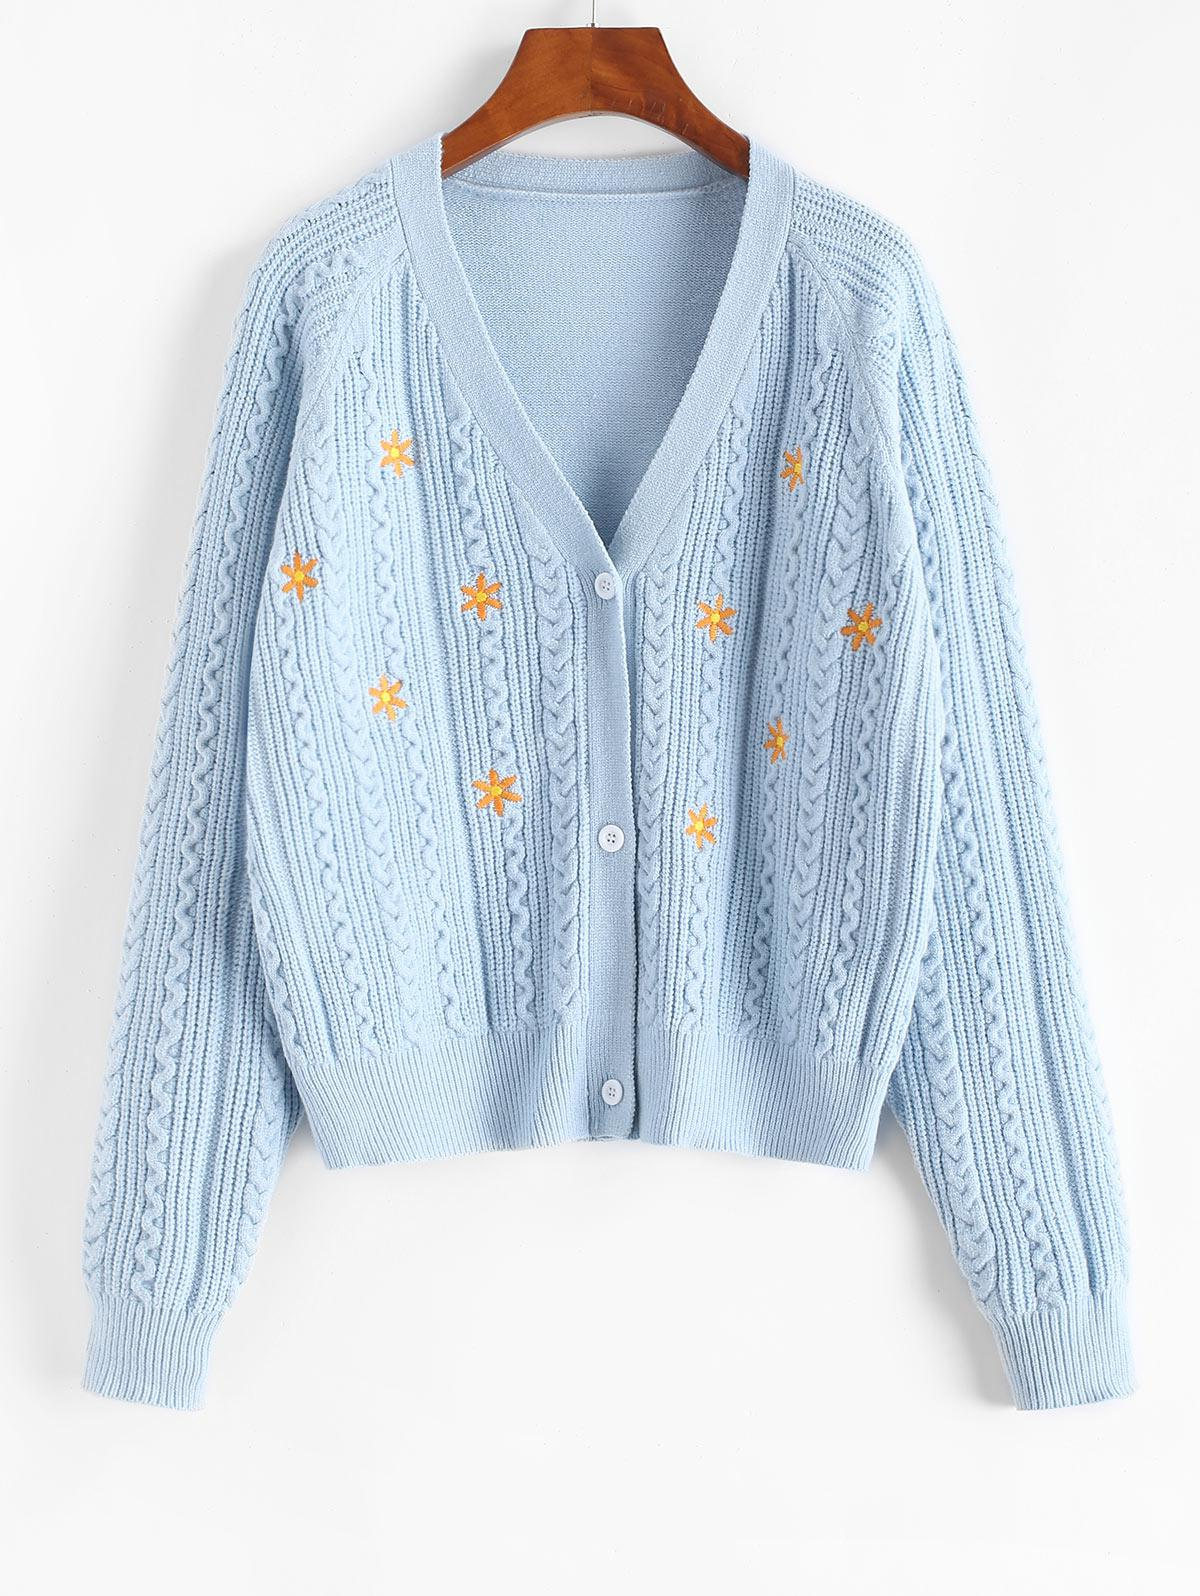 ZAFUL Button Up Cable Knit Floral Embroidered Cardigan